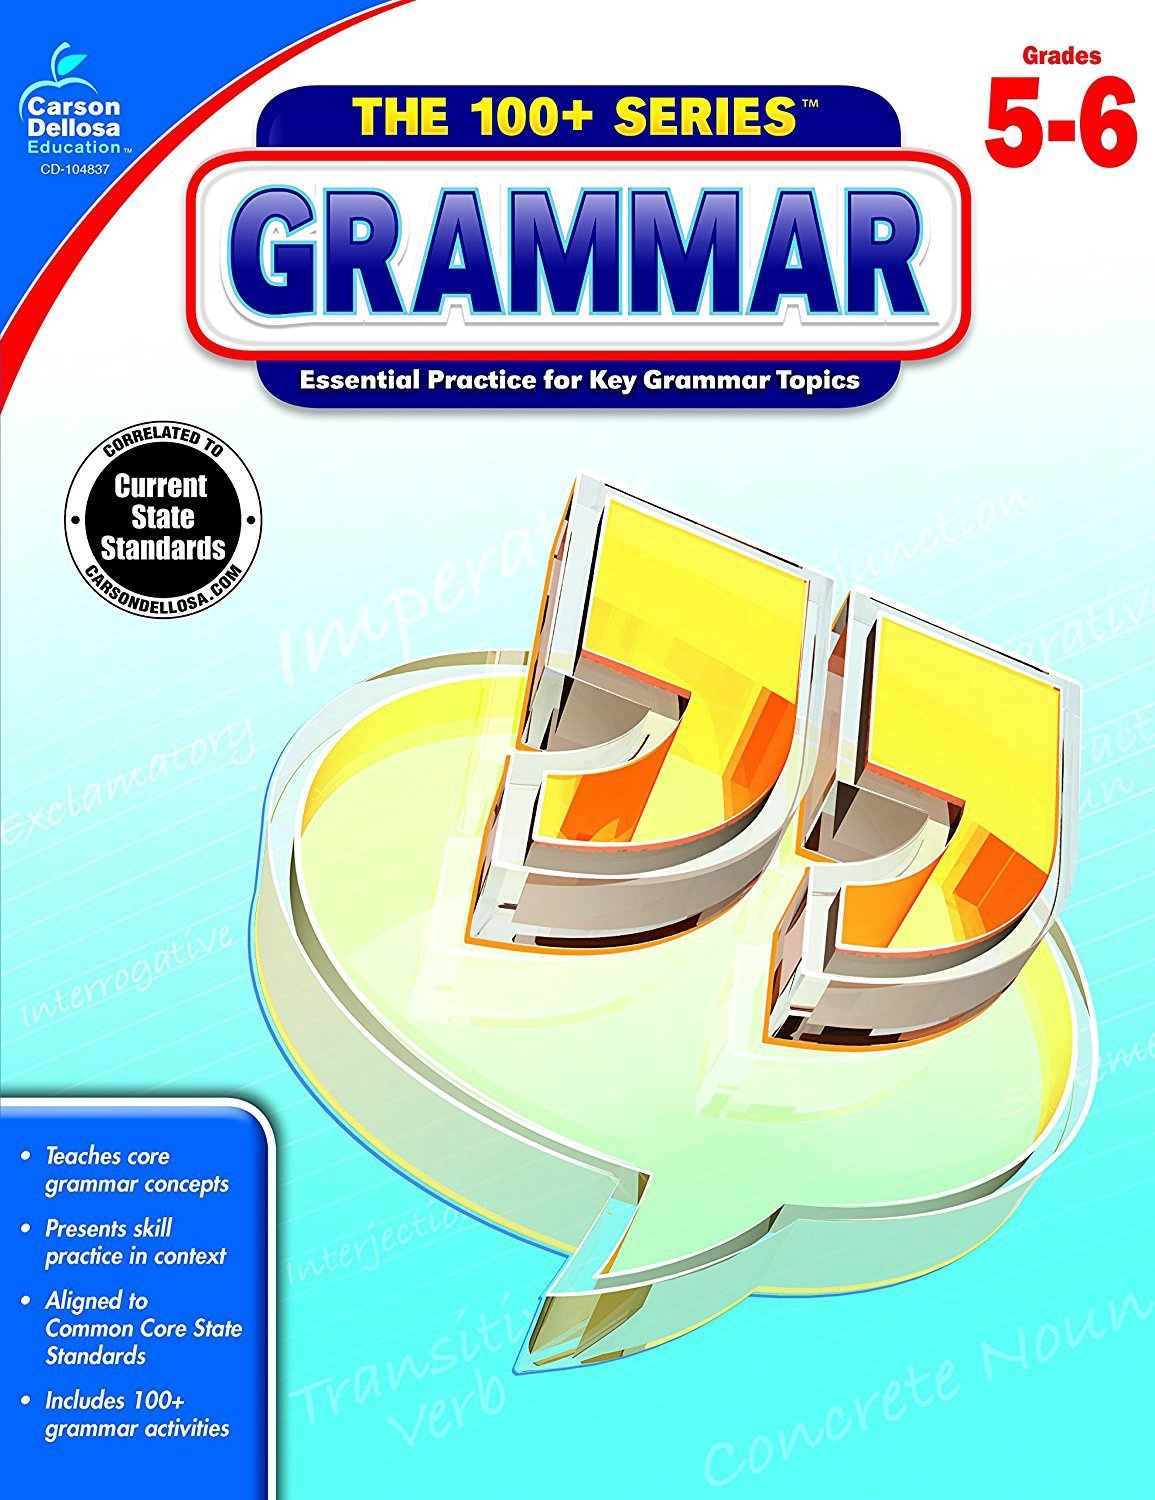 CD 104837 THE 100+ SERIES GRAMMAR G5-6